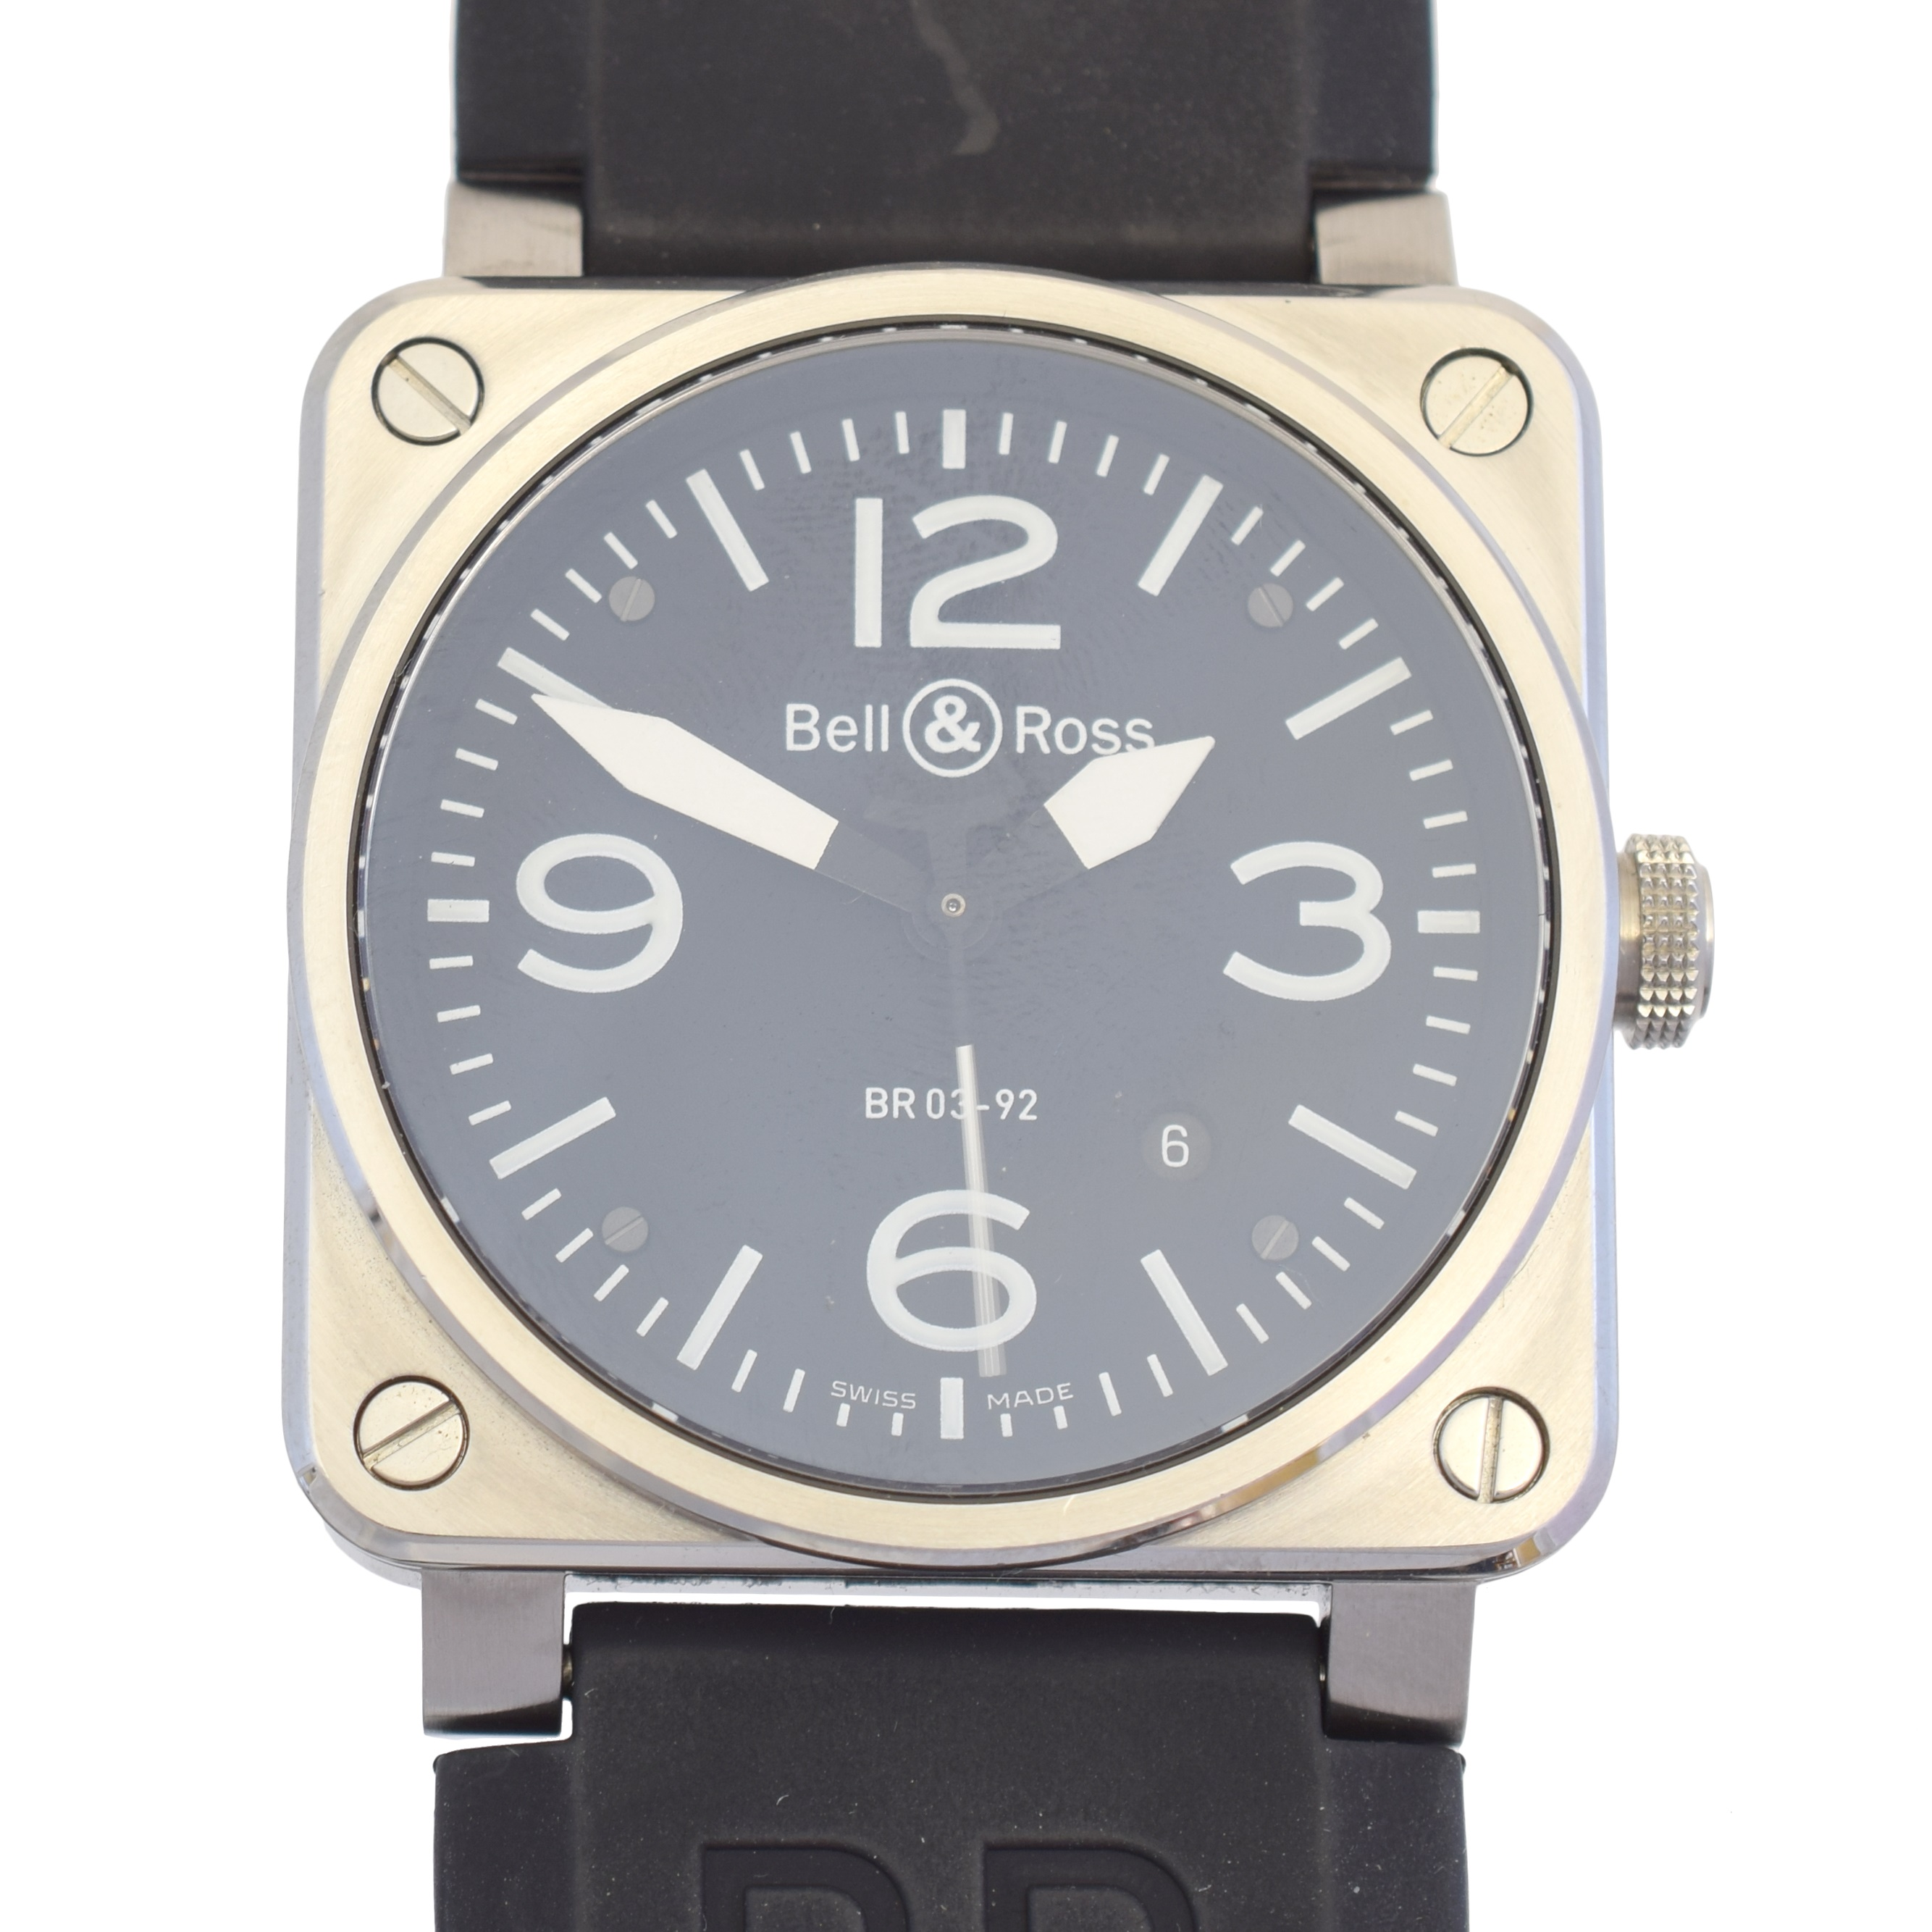 A stainless steel Bell & Ross watch, BR 03-92, the circular black signed dial with Arabic and baton hour markers, date aperture to 5, automatic movement, within a stainless steel square shape case with screw detailing, case back numbered BR 03-92-S011715, with black rubber strap, case width 42mm. With maker's box, technical notes booklet and warranty card.